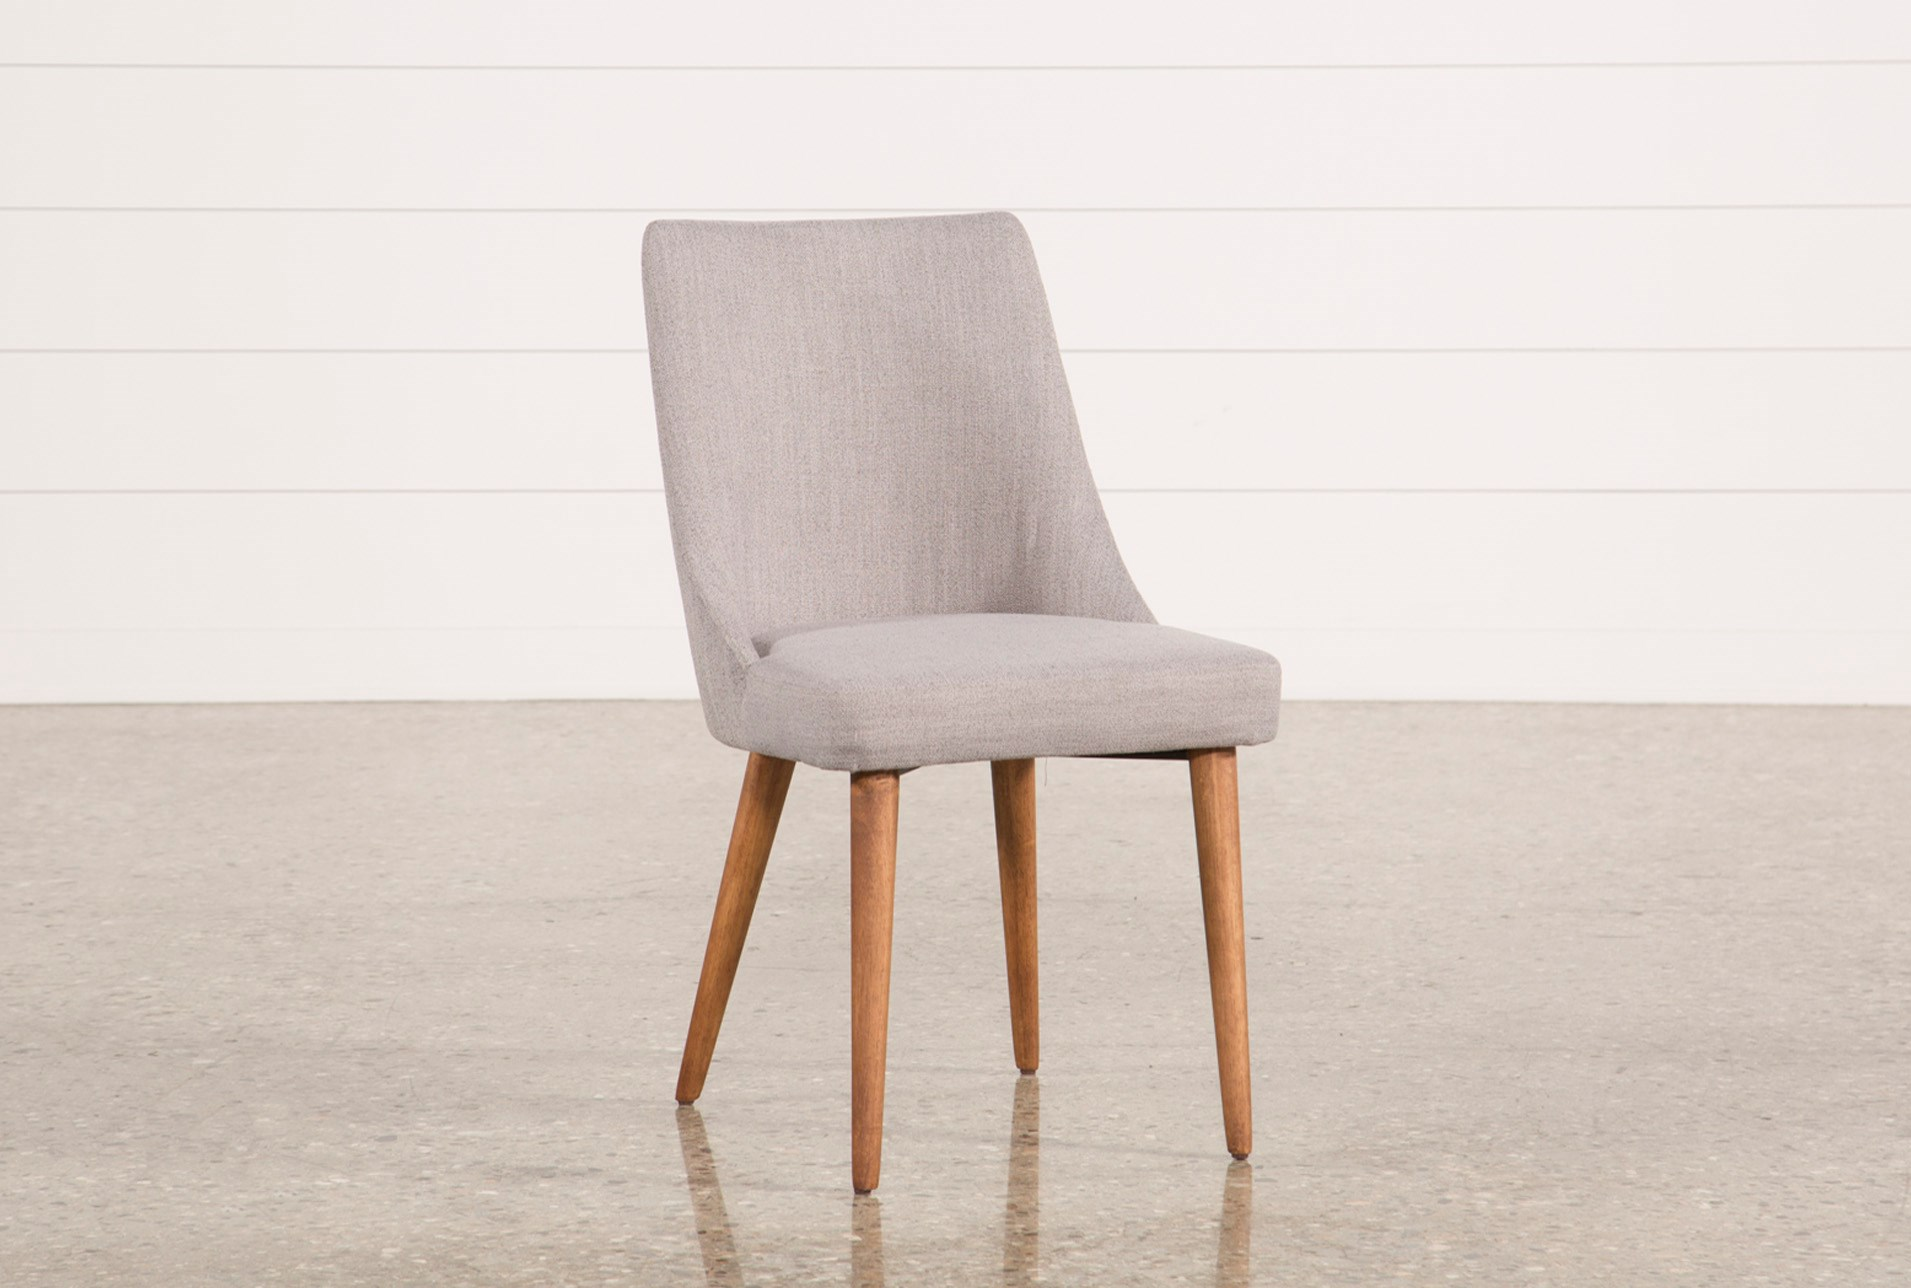 Moda Grey Side Chair Qty 1 Has Been Successfully Added To Your Cart